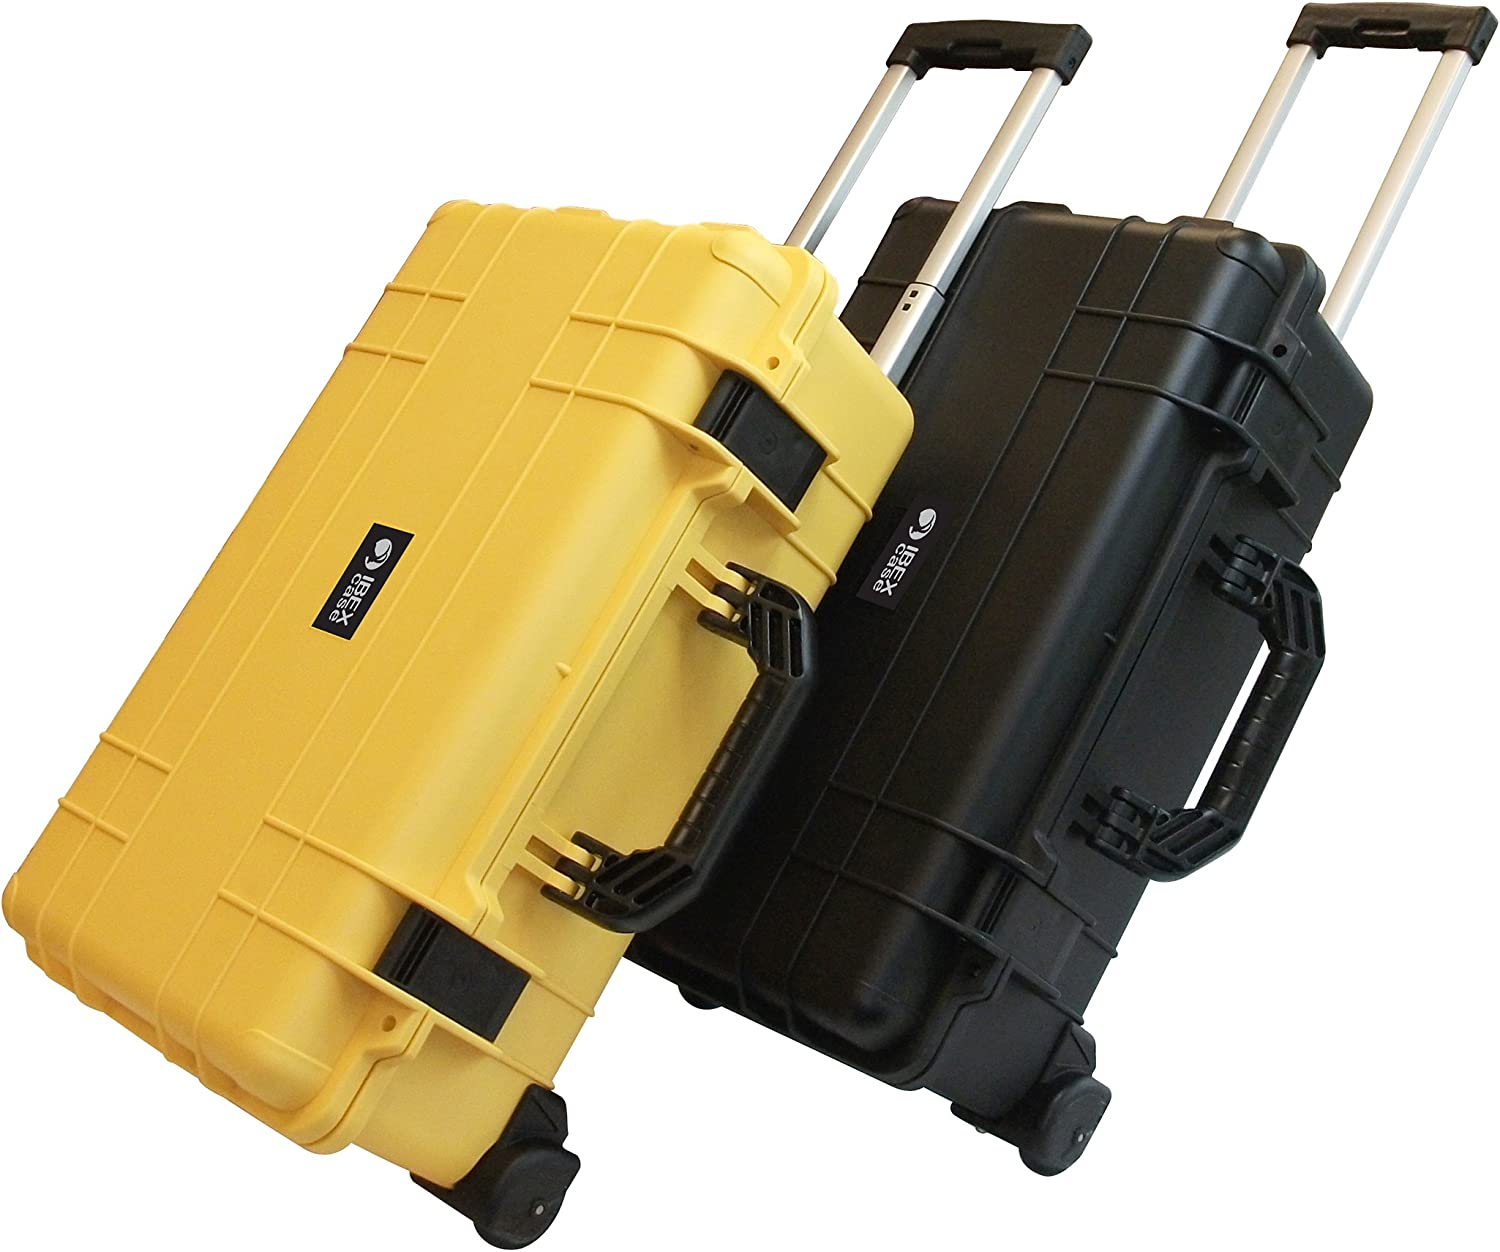 Cameras Tools IC-1800YLW Ibex Cases and More Equipment Yellow Watertight Carry On Hard Rugged Protective Case with Wheels and Handle for Electronics Drones